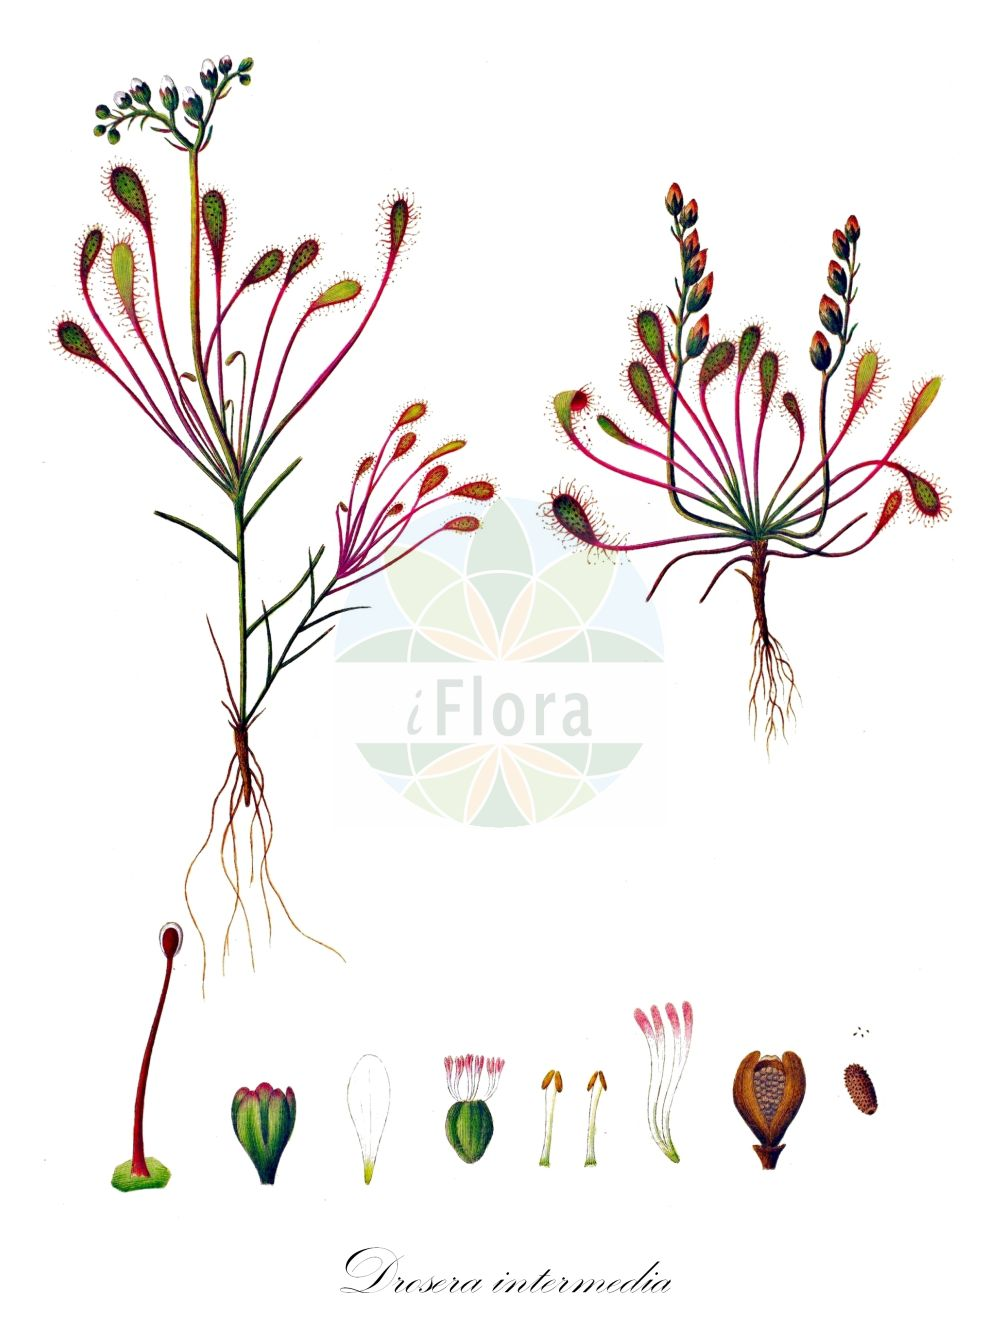 Historische Abbildung von Drosera intermedia (Mittlerer Sonnentau - Oblong-leaved Sundew). Das Bild zeigt Blatt, Bluete, Frucht und Same. ---- Historical Drawing of Drosera intermedia (Mittlerer Sonnentau - Oblong-leaved Sundew).The image is showing leaf, flower, fruit and seed. (Drosera intermedia,Mittlerer Sonnentau,Oblong-leaved Sundew,Long-leaved Sundew,Spoonleaf Sundew,Great Sundew,Drosera,Sonnentau,Sundew,Droseraceae,Sonnentaugewaechse,Sundew family,Blatt,Bluete,Frucht,Same,leaf,flower,fruit,seed,Oeder (1761-1883))